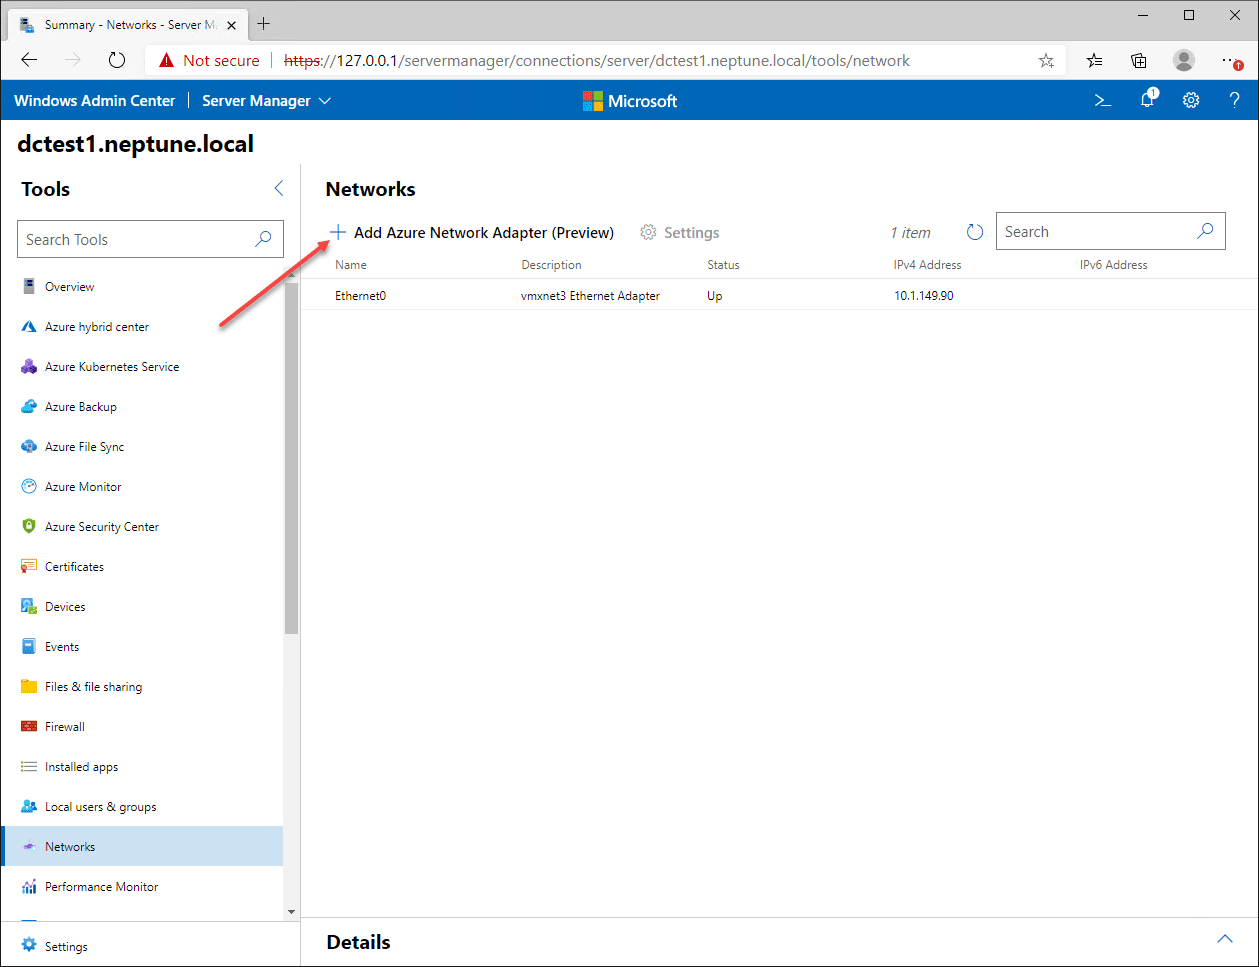 Click to Add an Azure Network Adapter